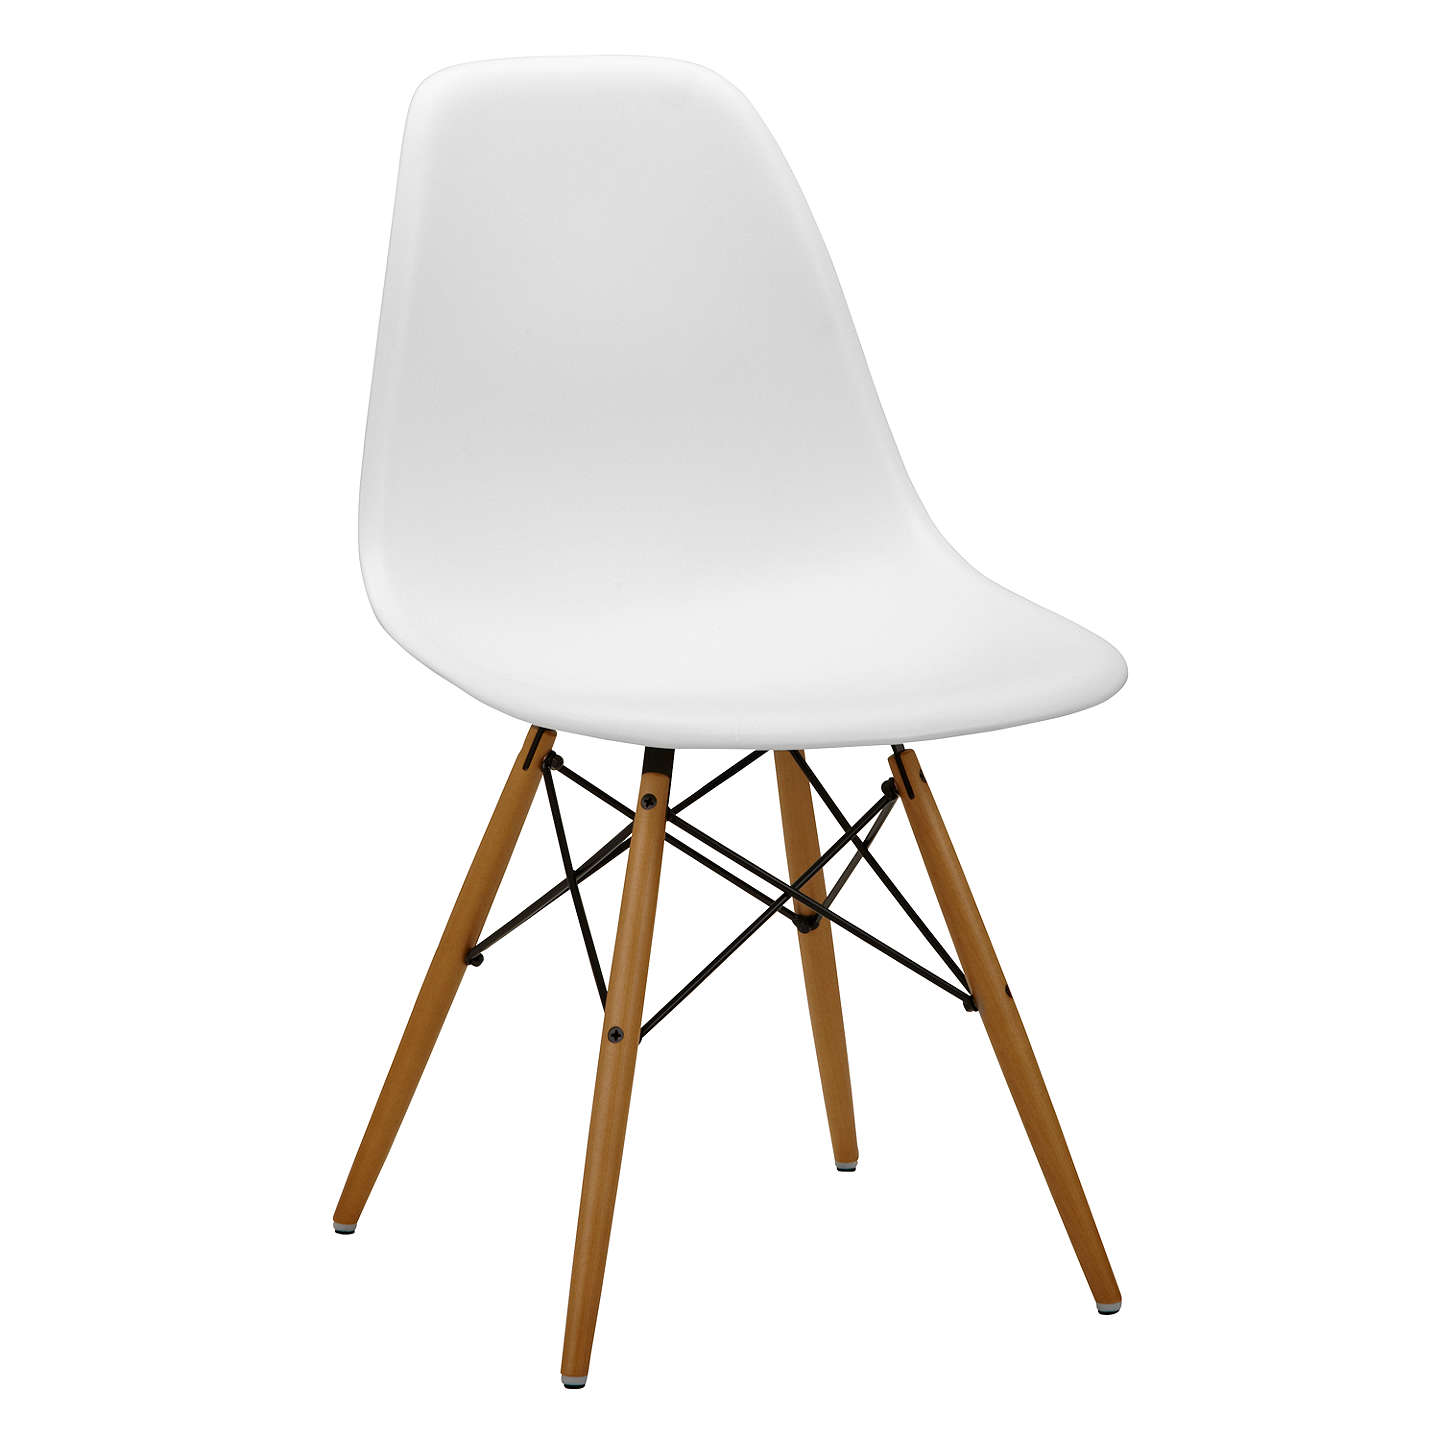 Vitra eames dsw 43cm side chair at john lewis for Eames vitra replica